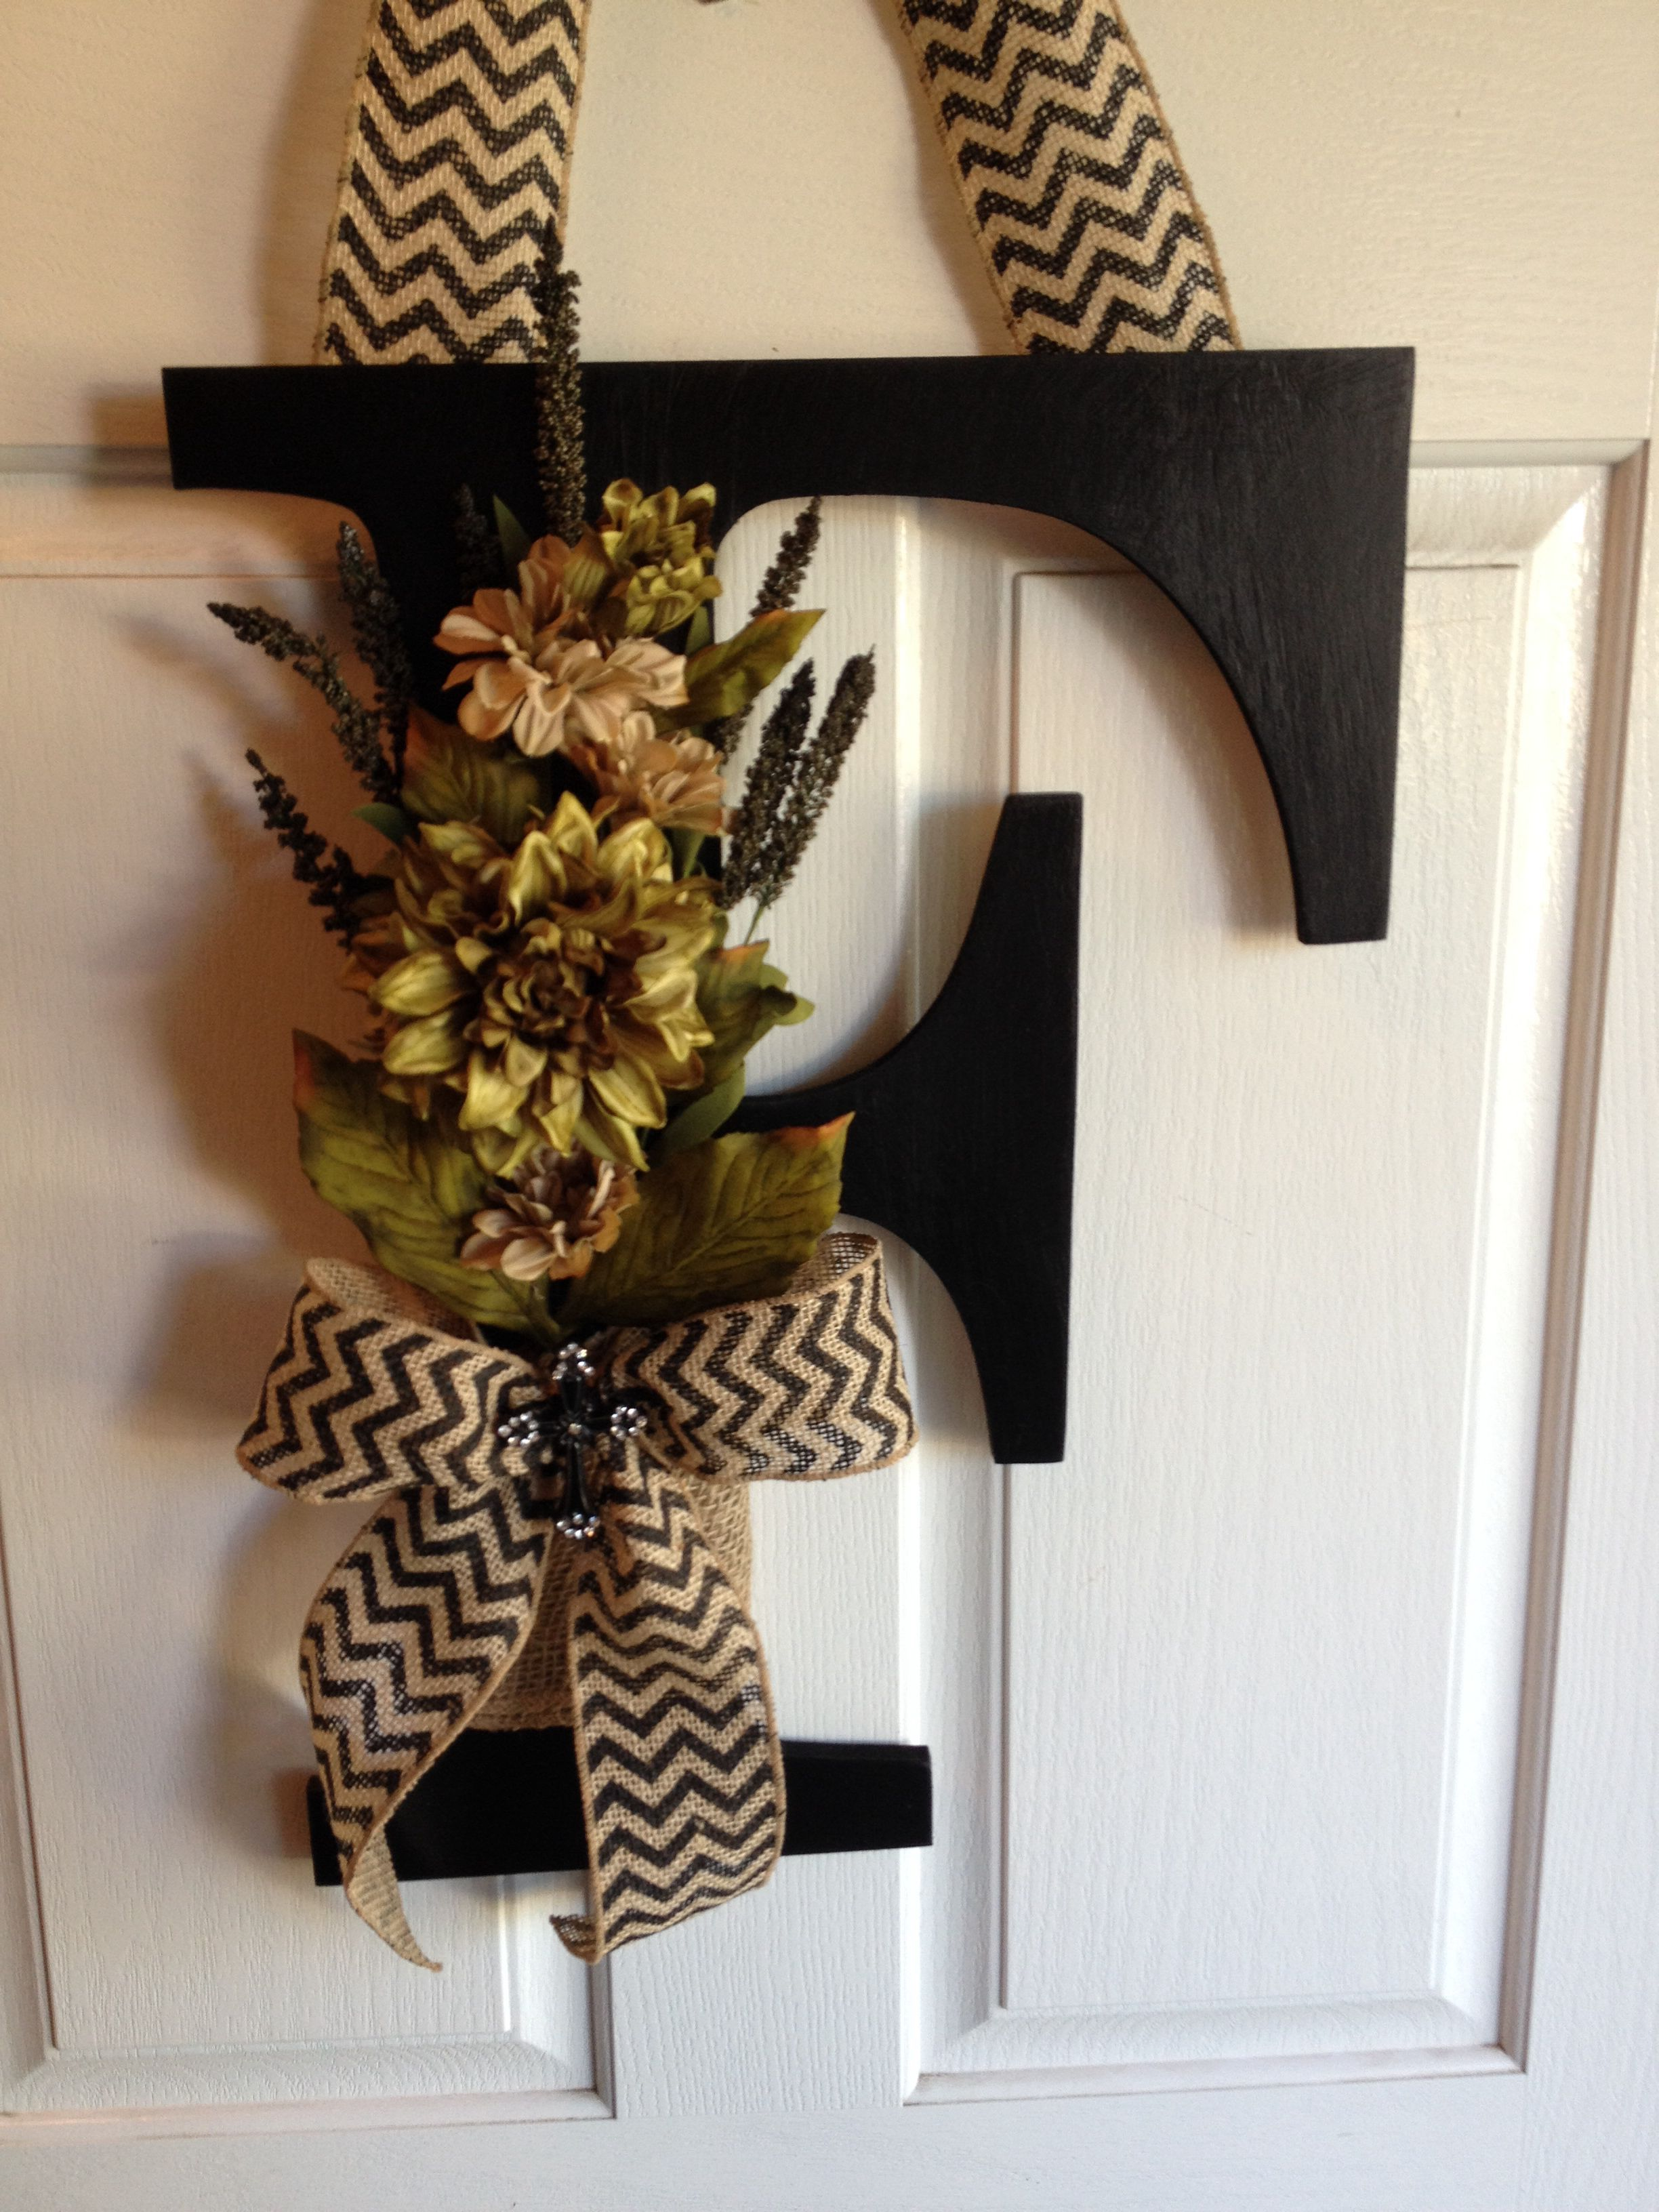 Pin By Tracy Carlson On Wreaths Decorative Letters Door Decorations Diy Wreath